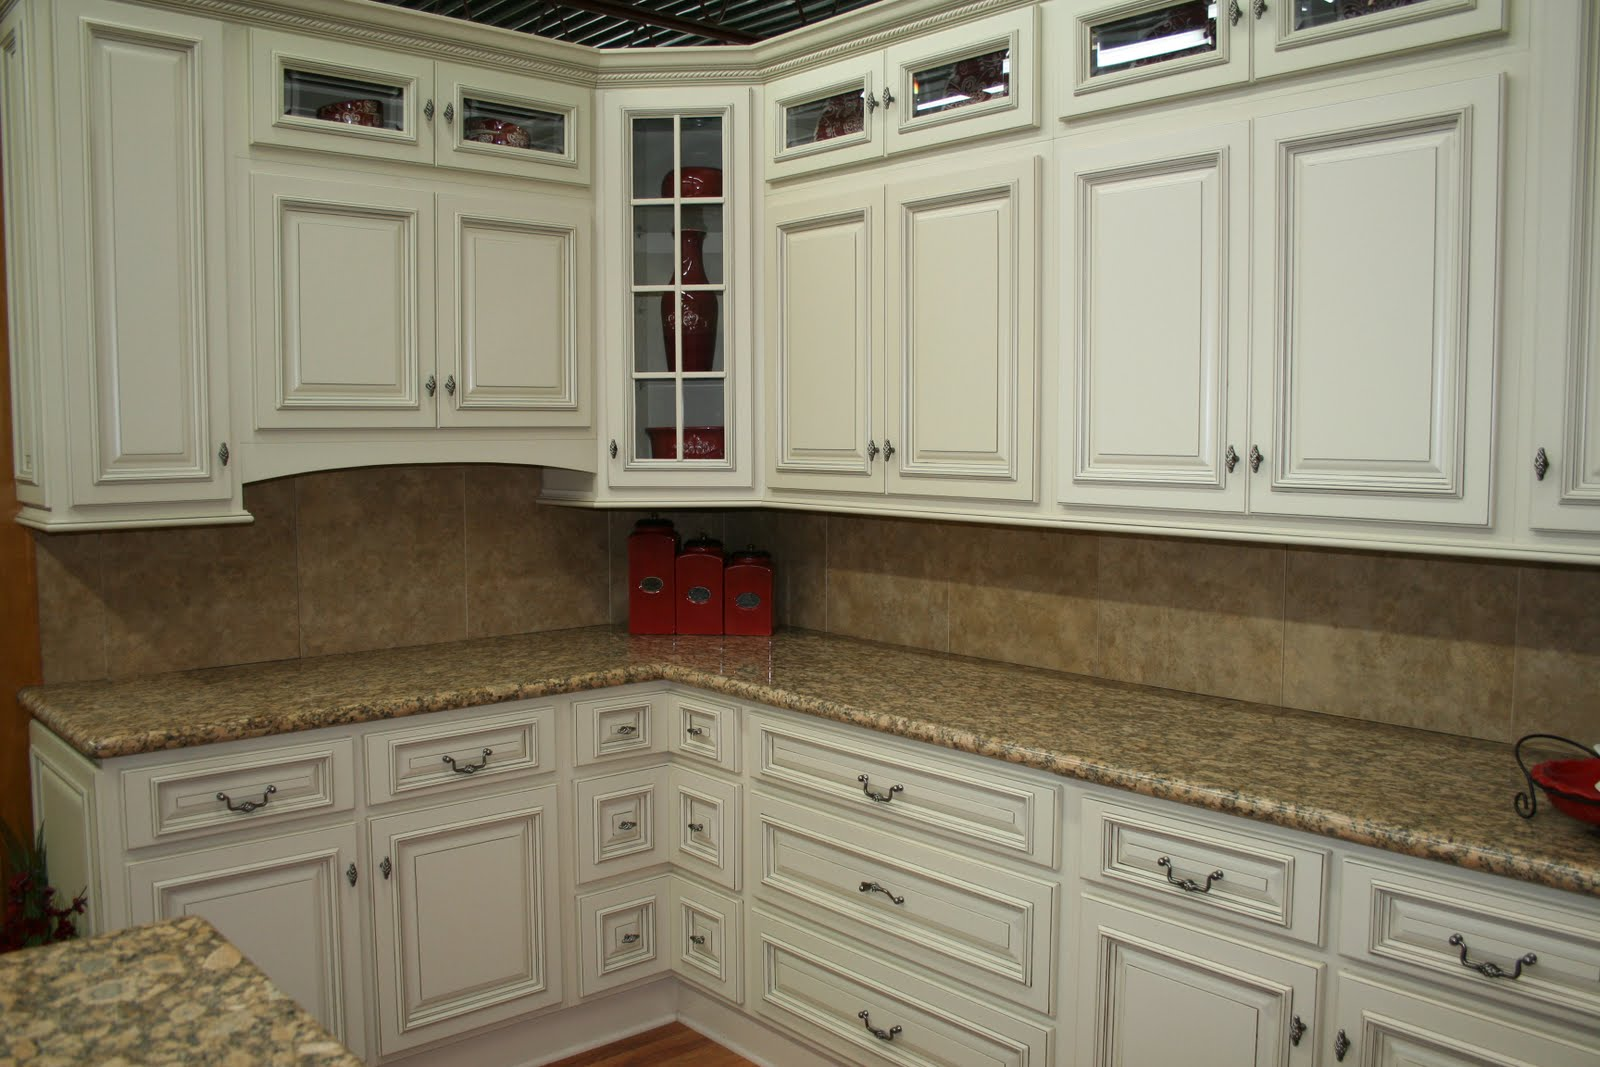 Kitchen cabinet refacing techniques - Redesigning Your Cabinets Can Give Your Kitchen A Whole New Look Without Breaking The Bank But What S The Best Route To Take Refacing Or Replacing